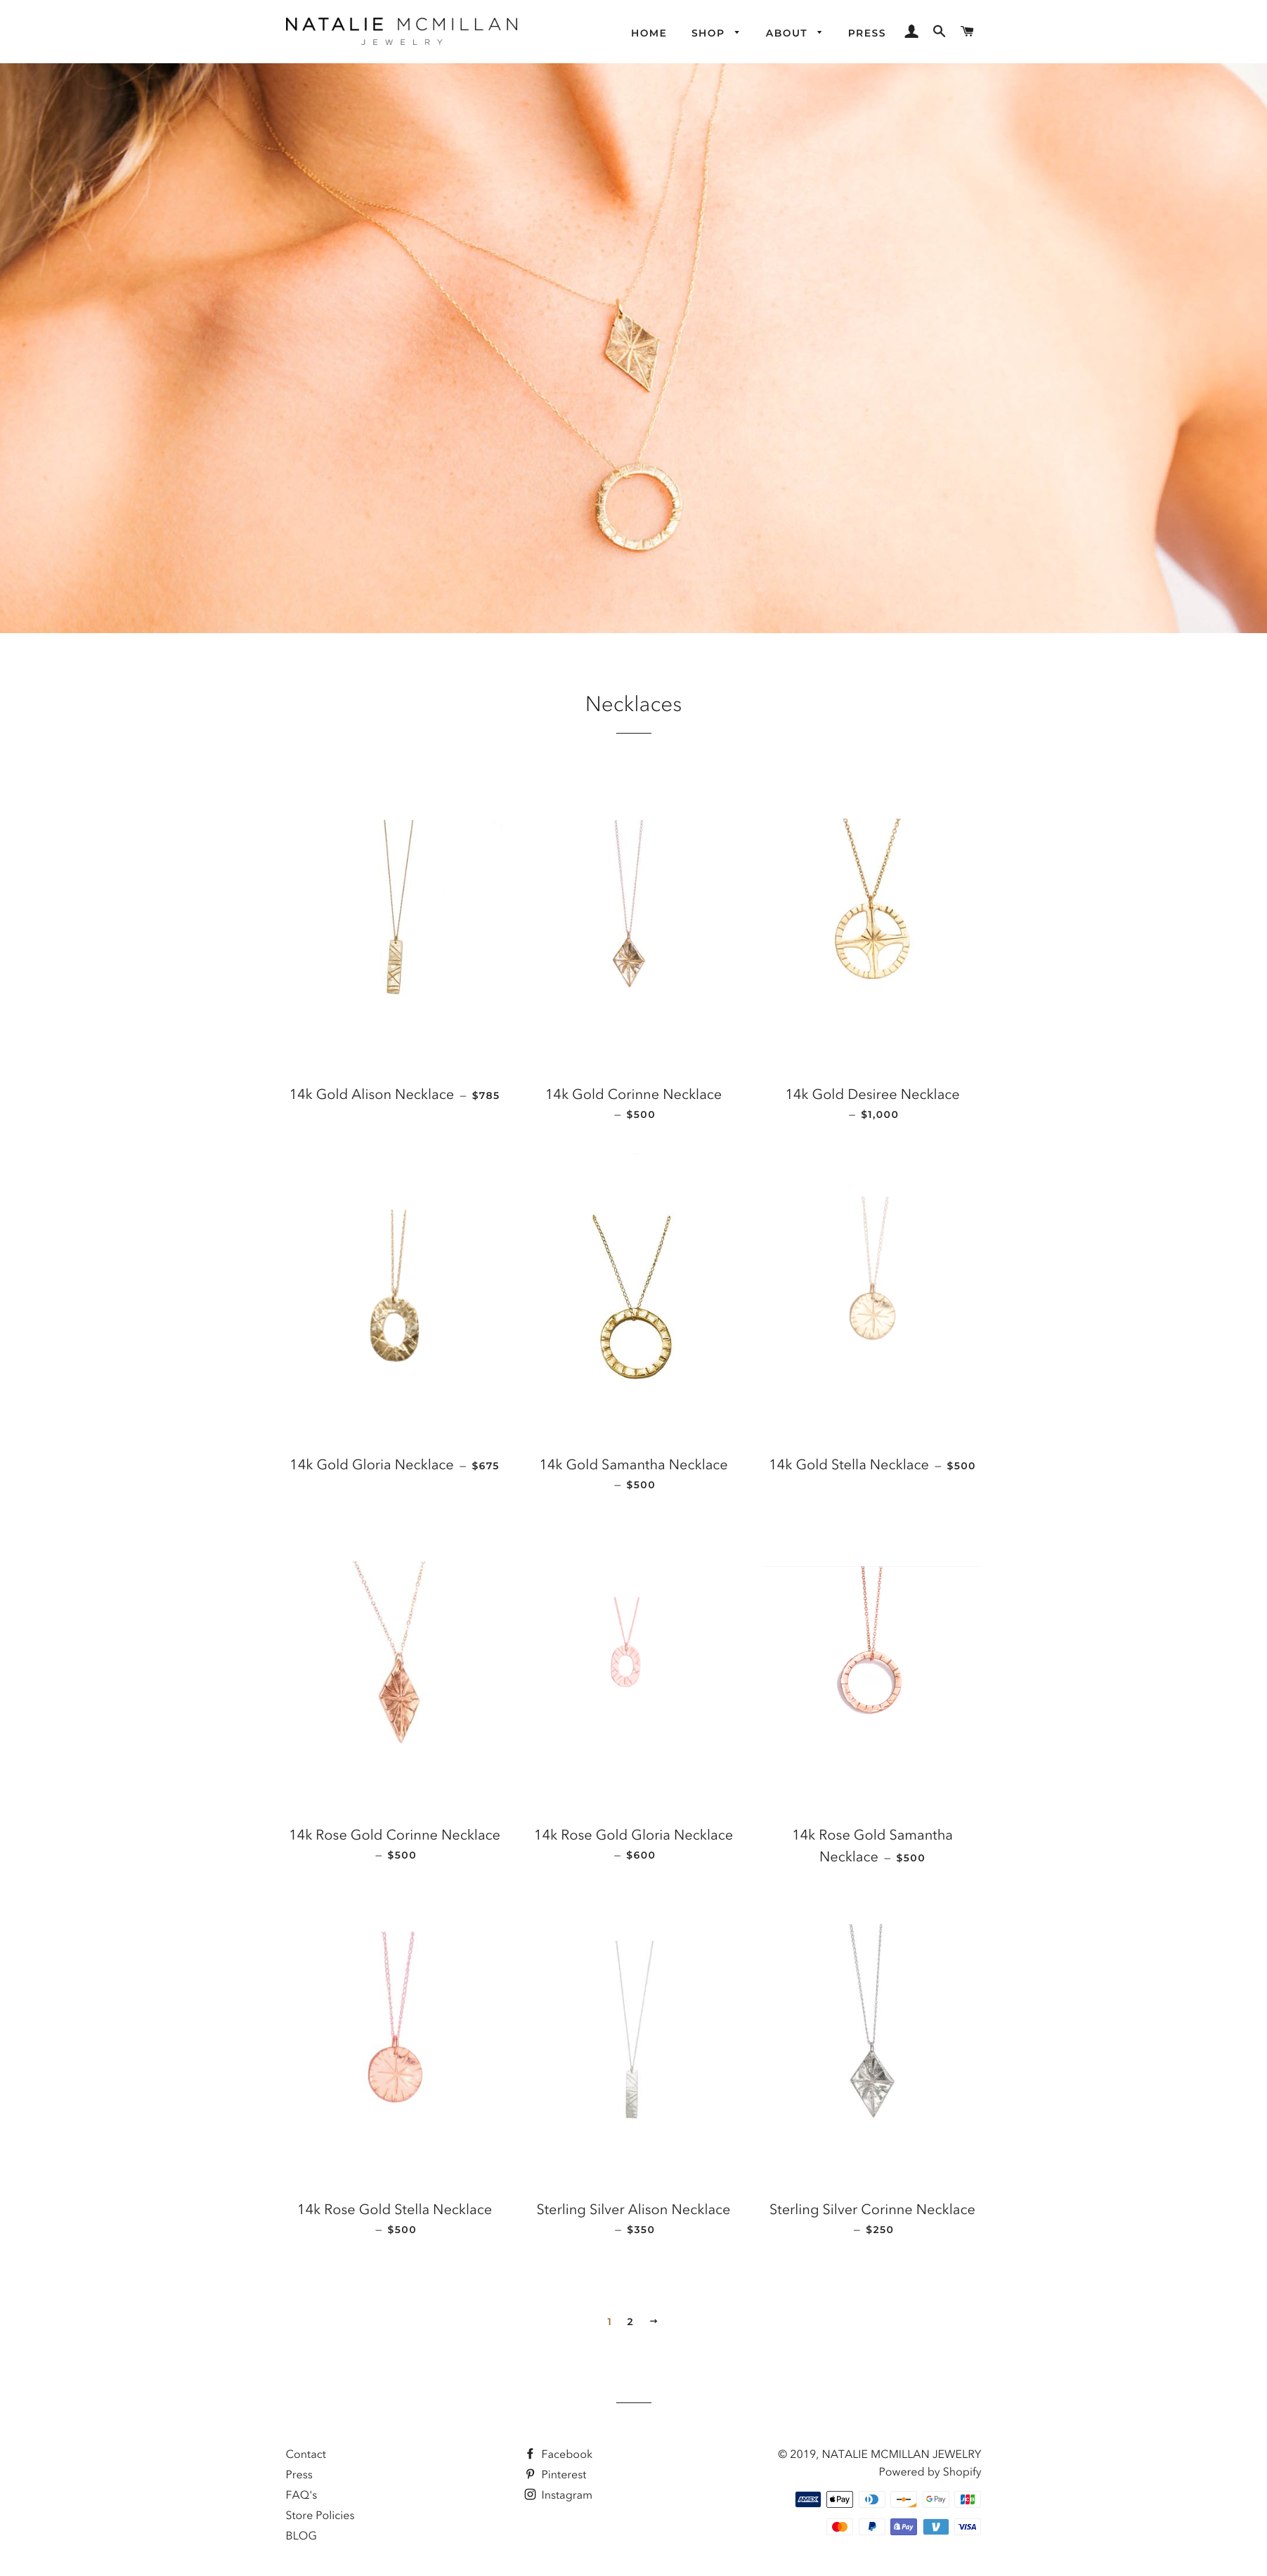 screencapture-nataliemcmillanjewelry-collections-necklaces-2019-06-18-14_37_13.png